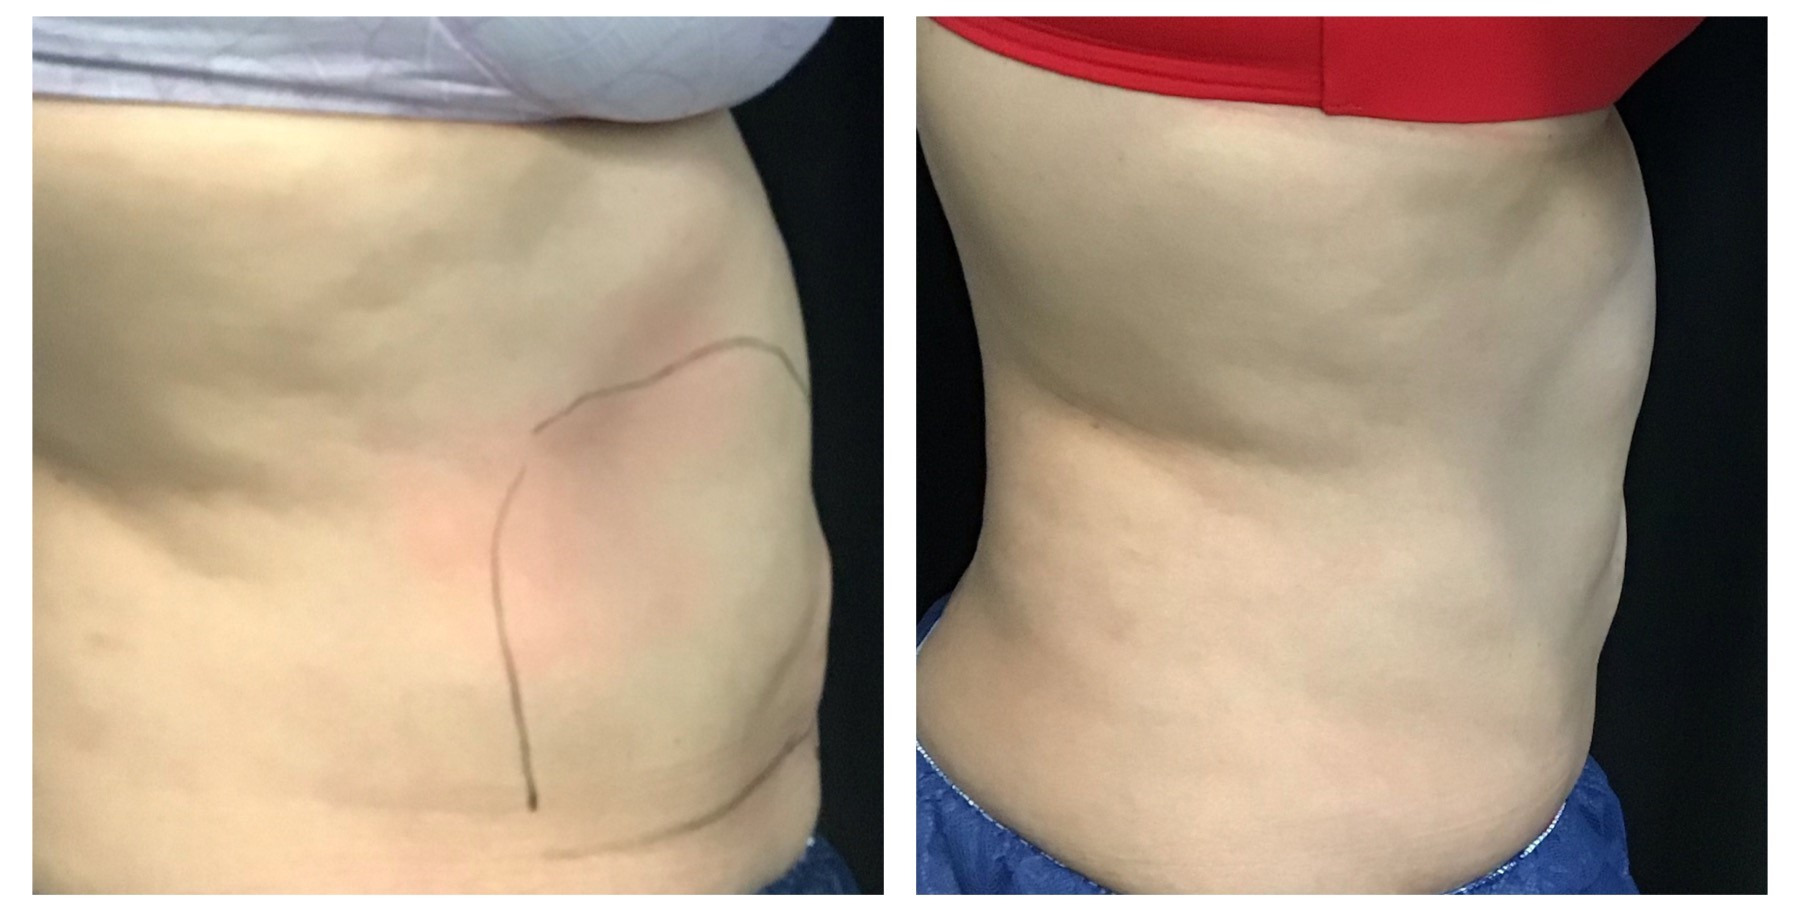 Before and After Pictures of CoolSculpting on Stomach